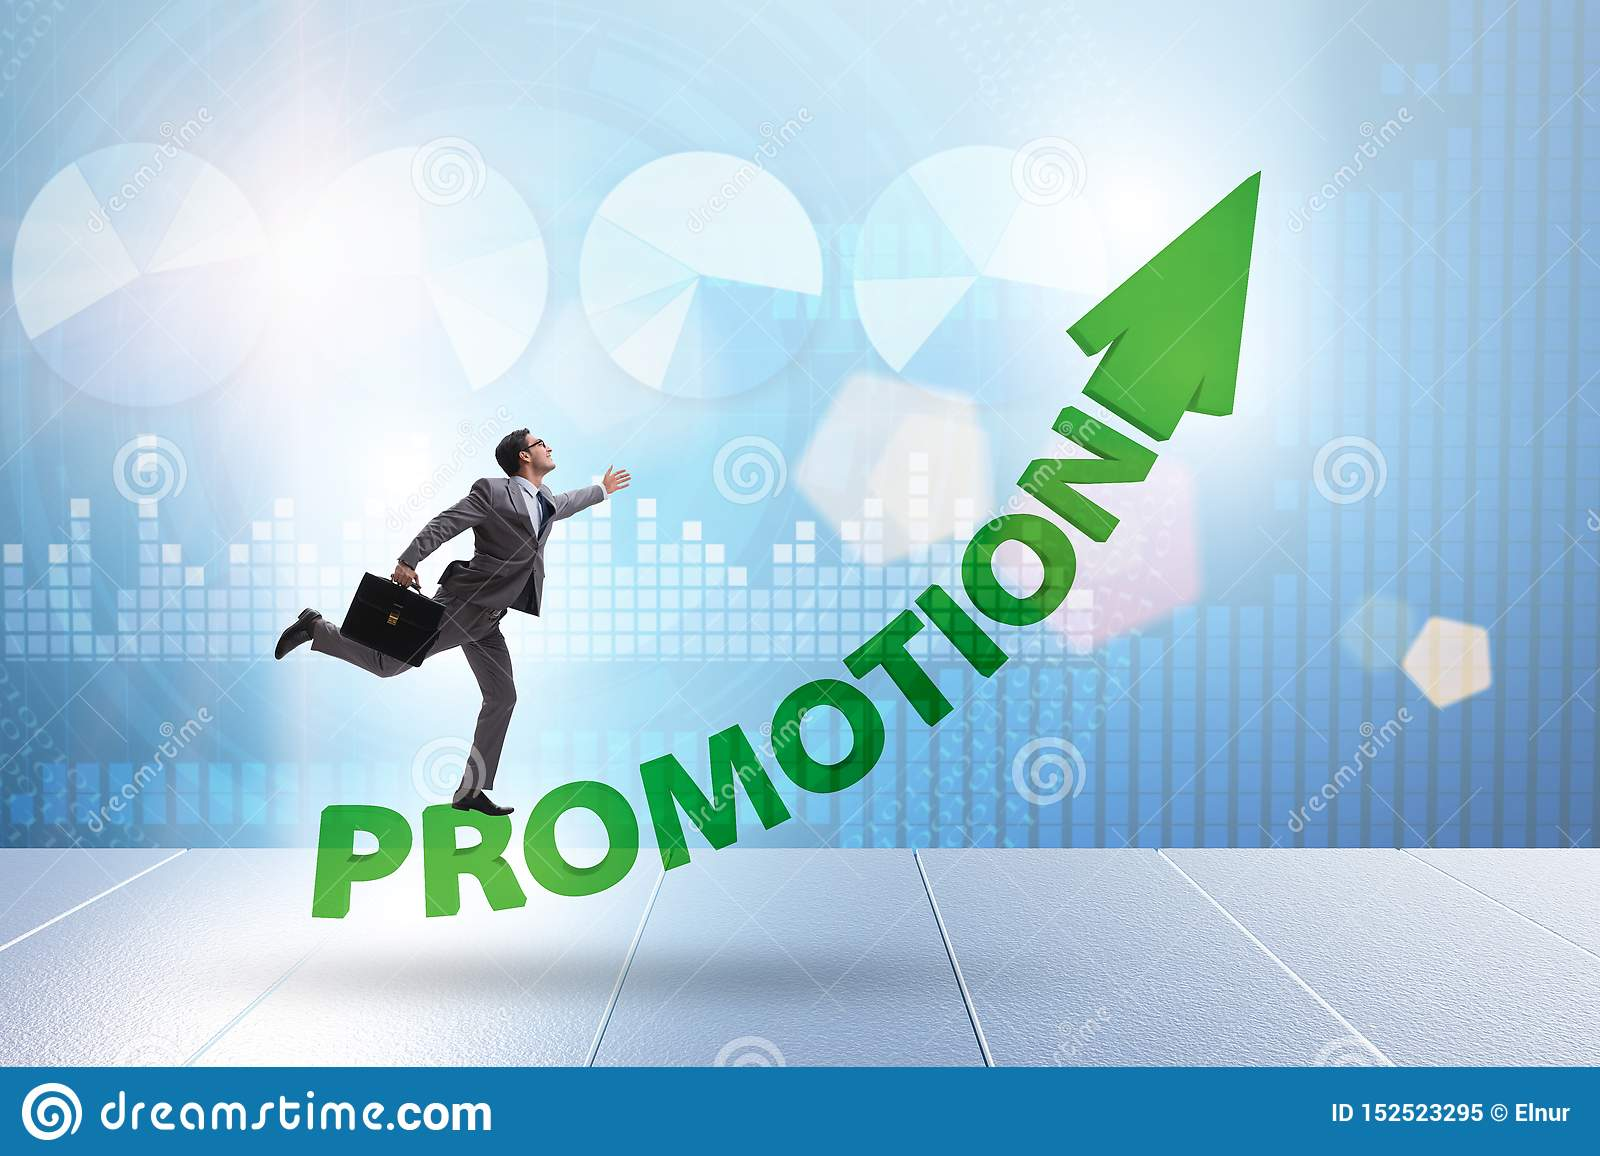 employee in career promotion concept stock illustration